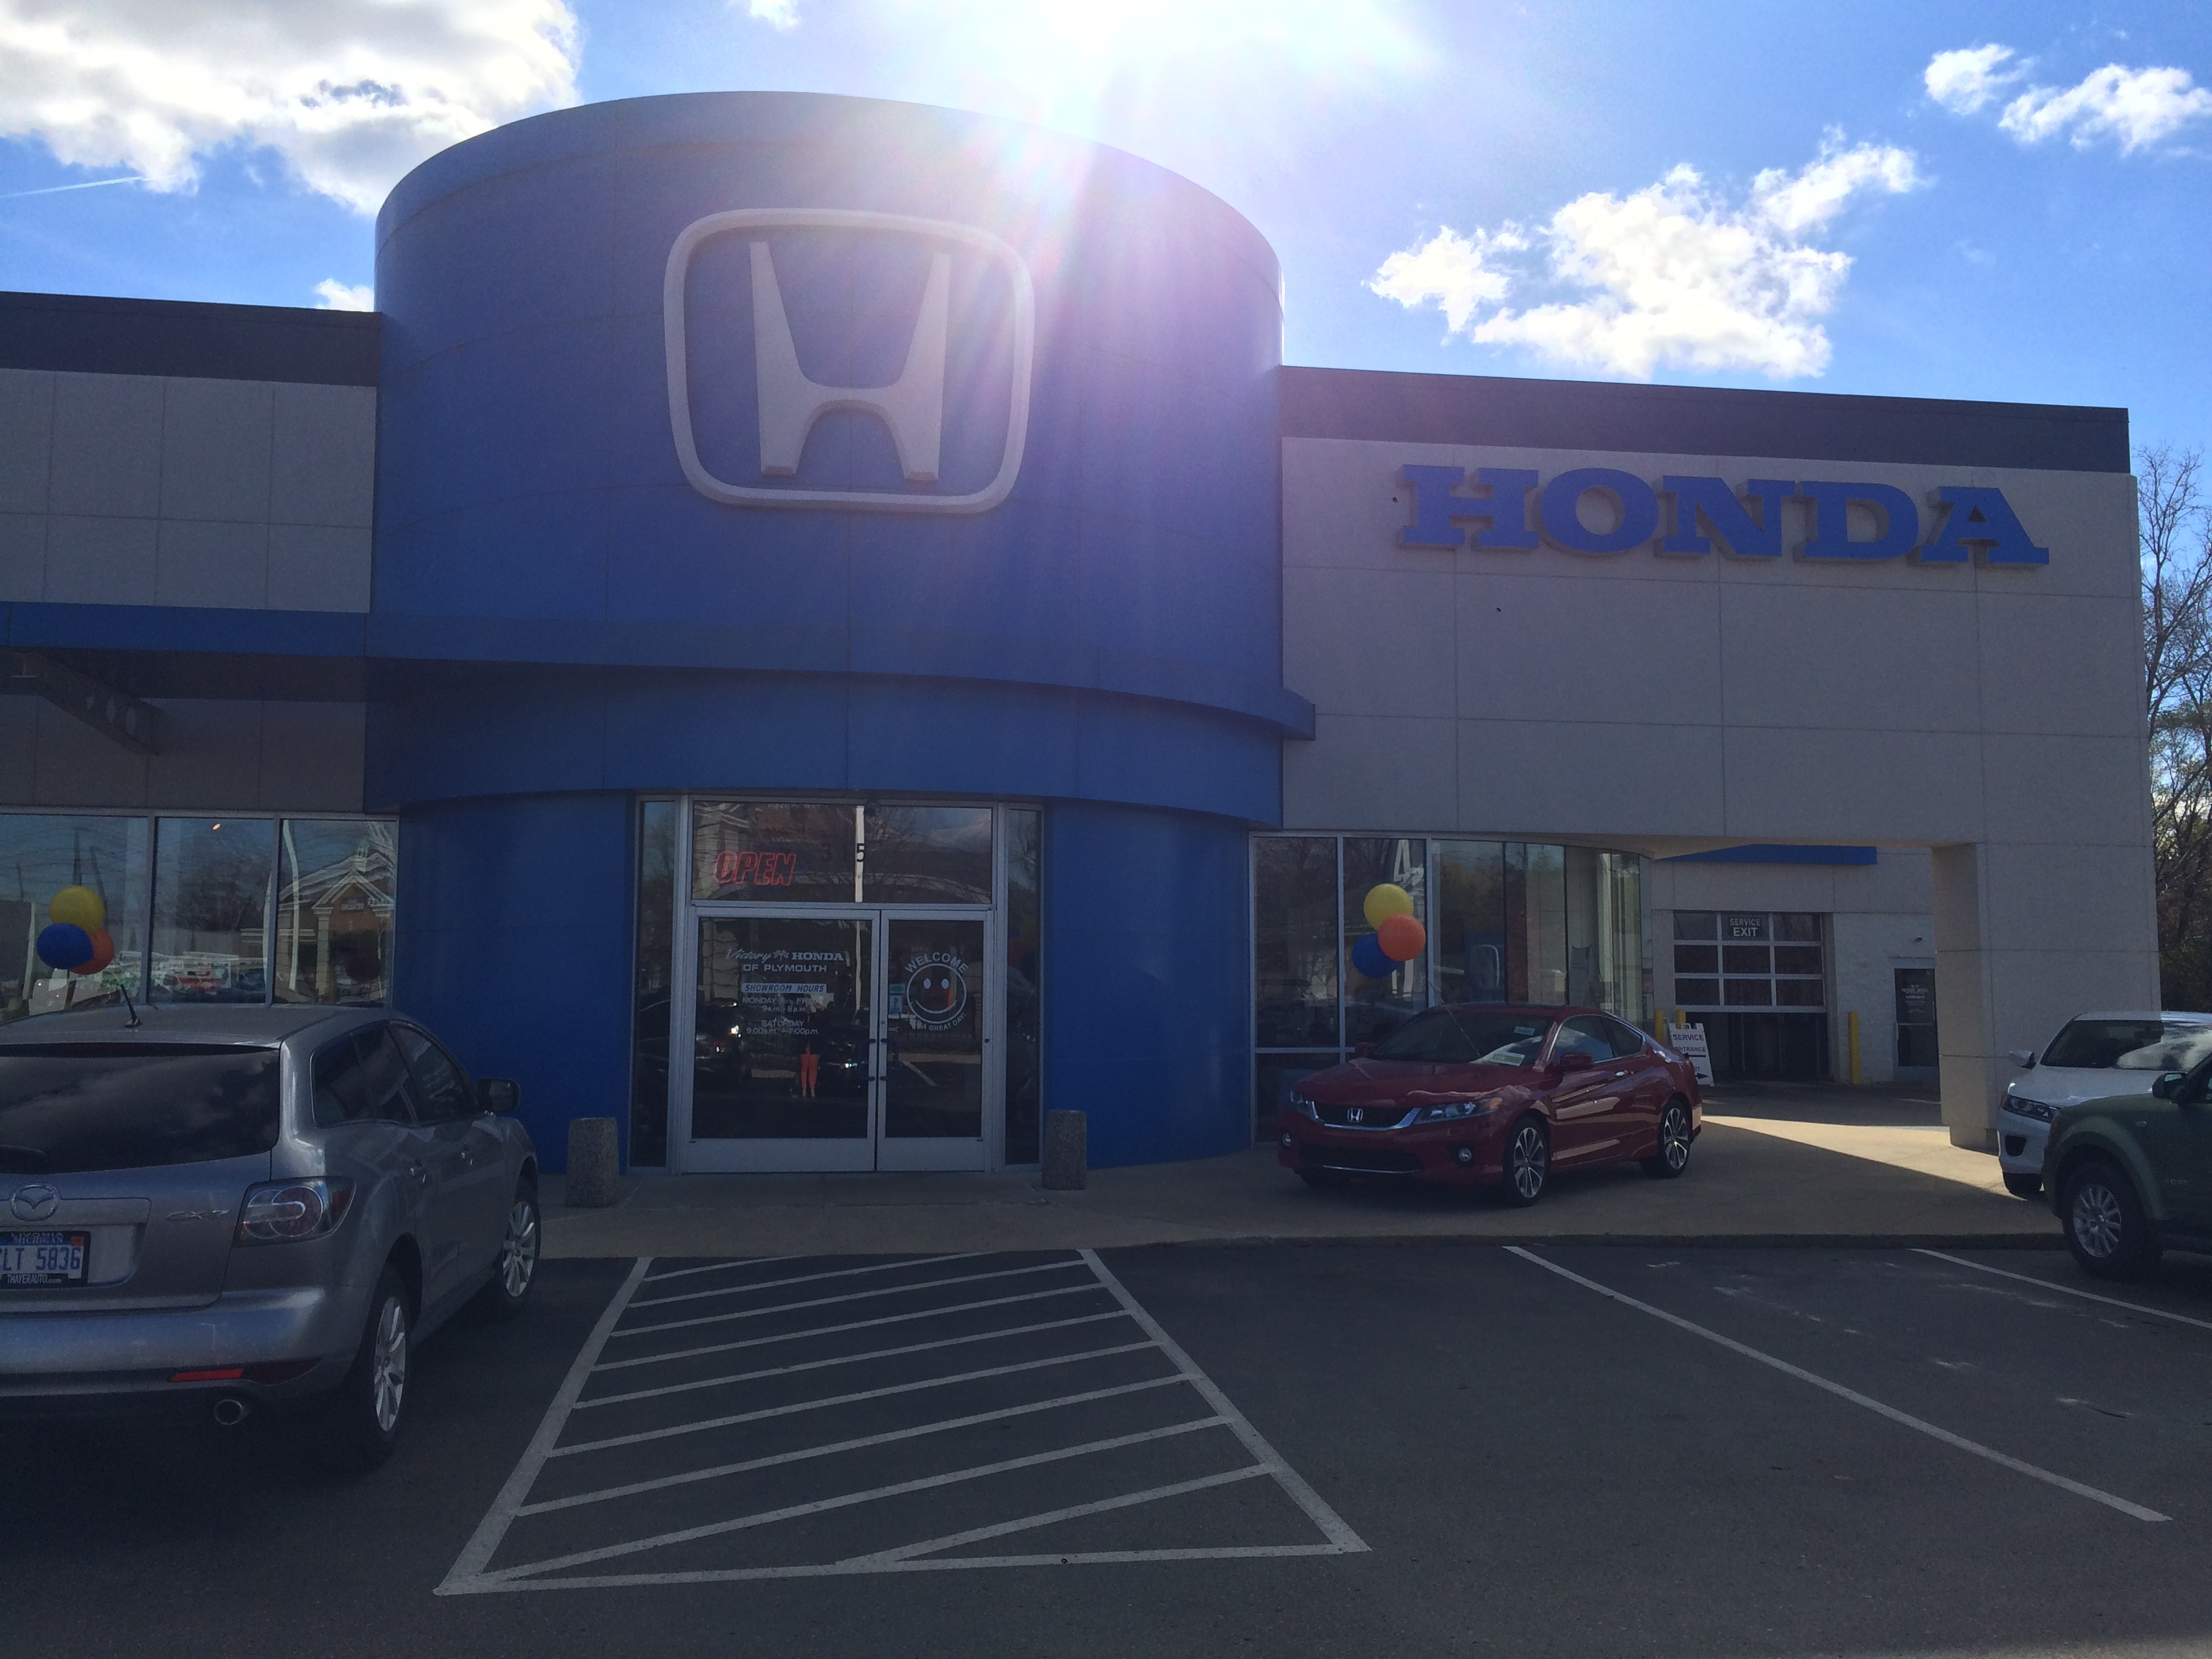 Victory toyota of canton canton mi 48188 car dealership for Honda dealership michigan